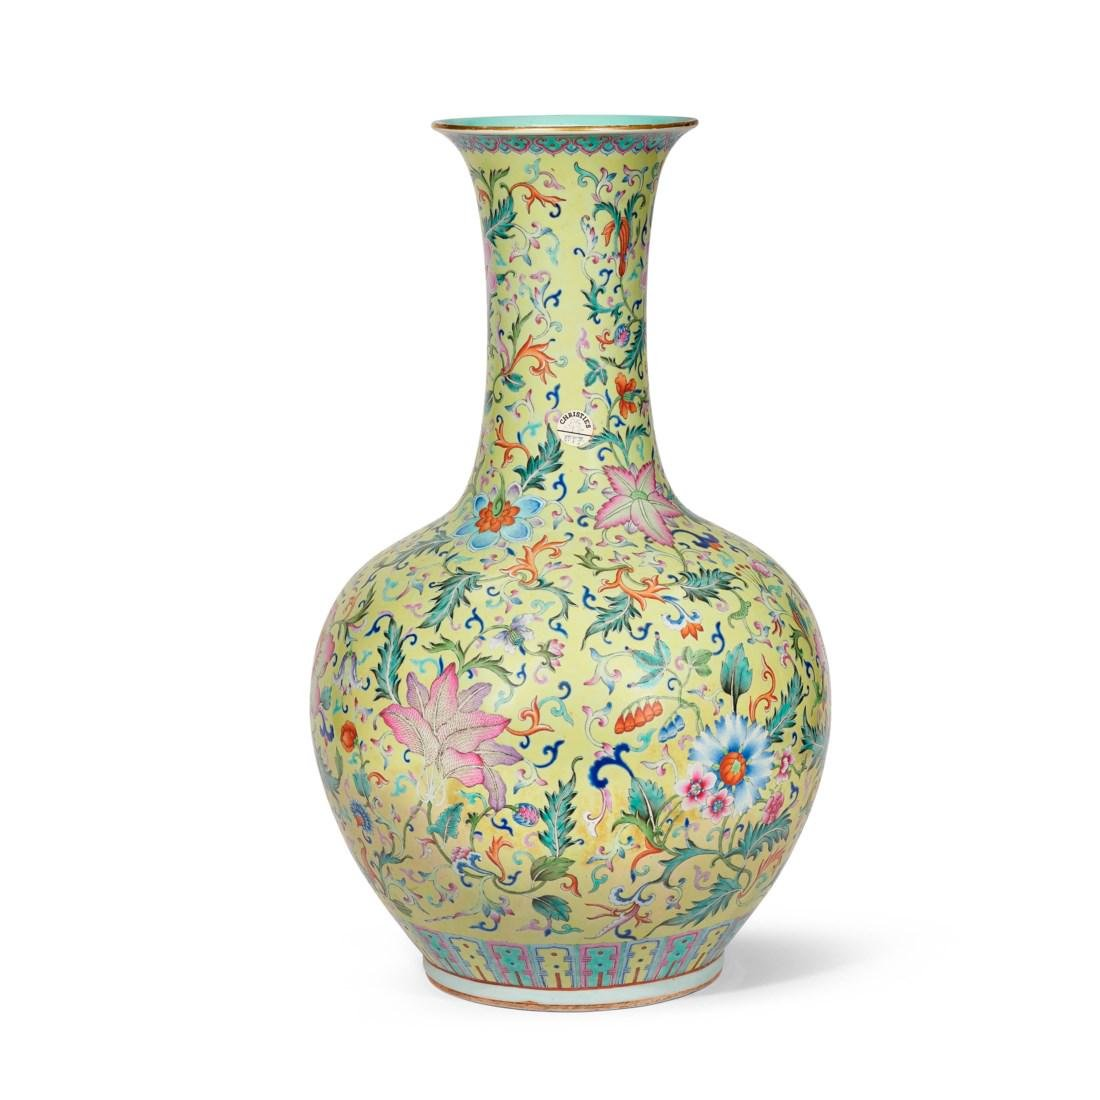 A LARGE FAMILLE ROSE YELLOW-GROUND FLORAL VASE